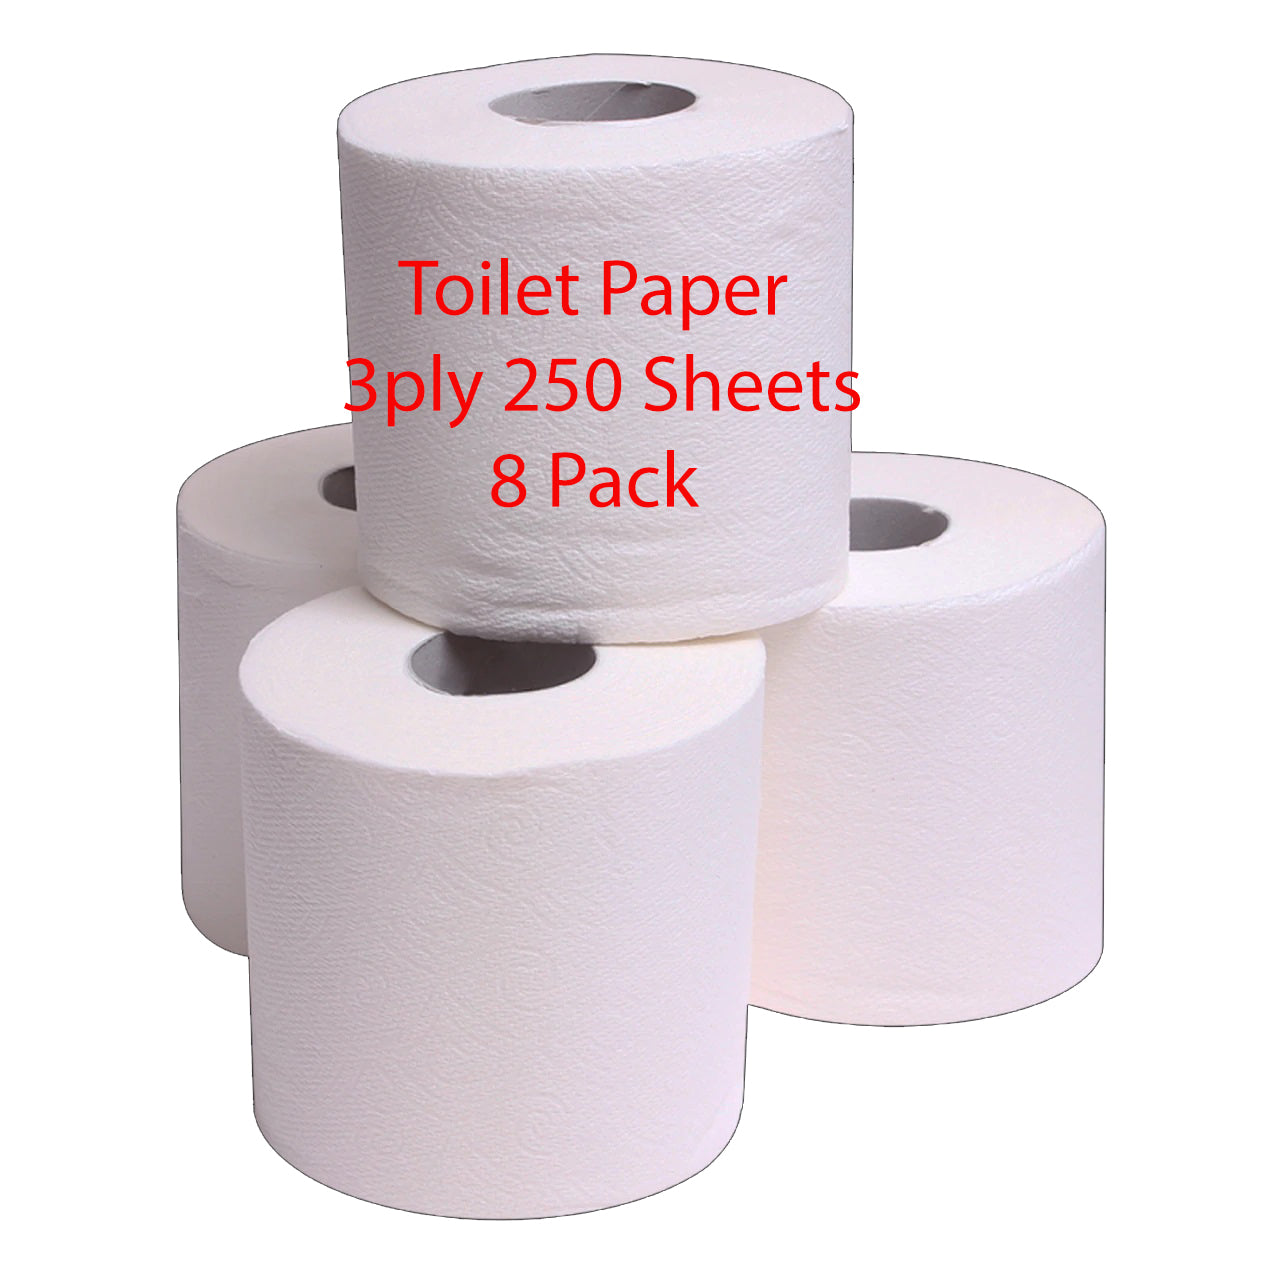 Mr. President - Toilet Paper - 3ply 250 Sheets - 4 Pack